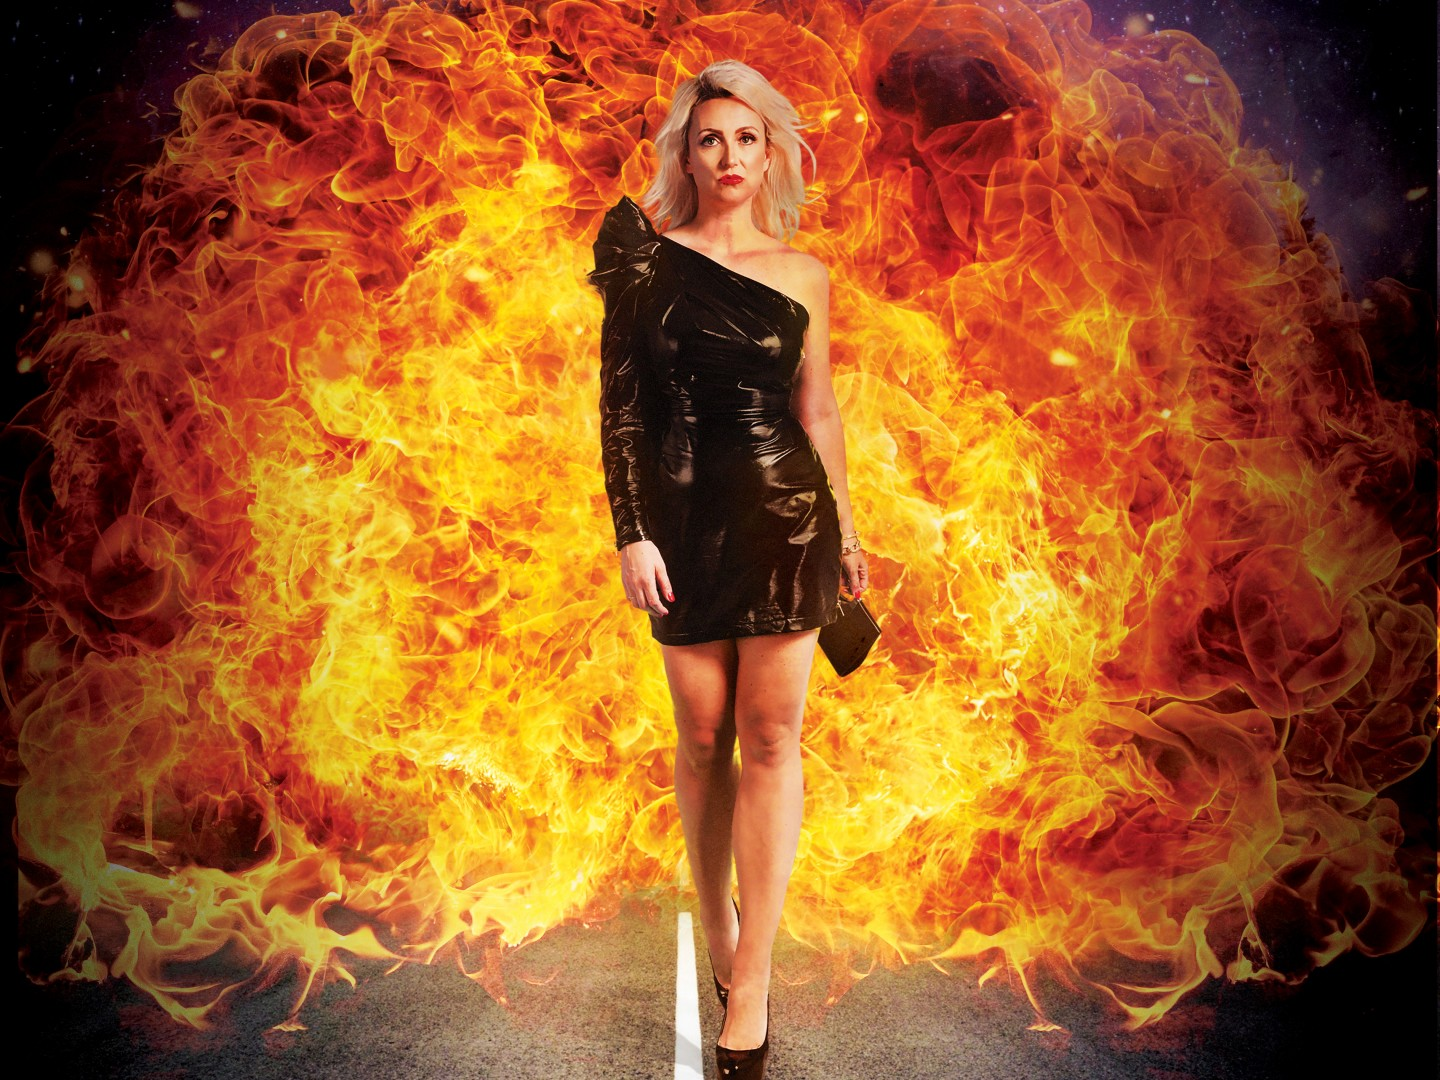 Out From Under the Pile Eleanor Conway Walk of Shame 2 Fire Image